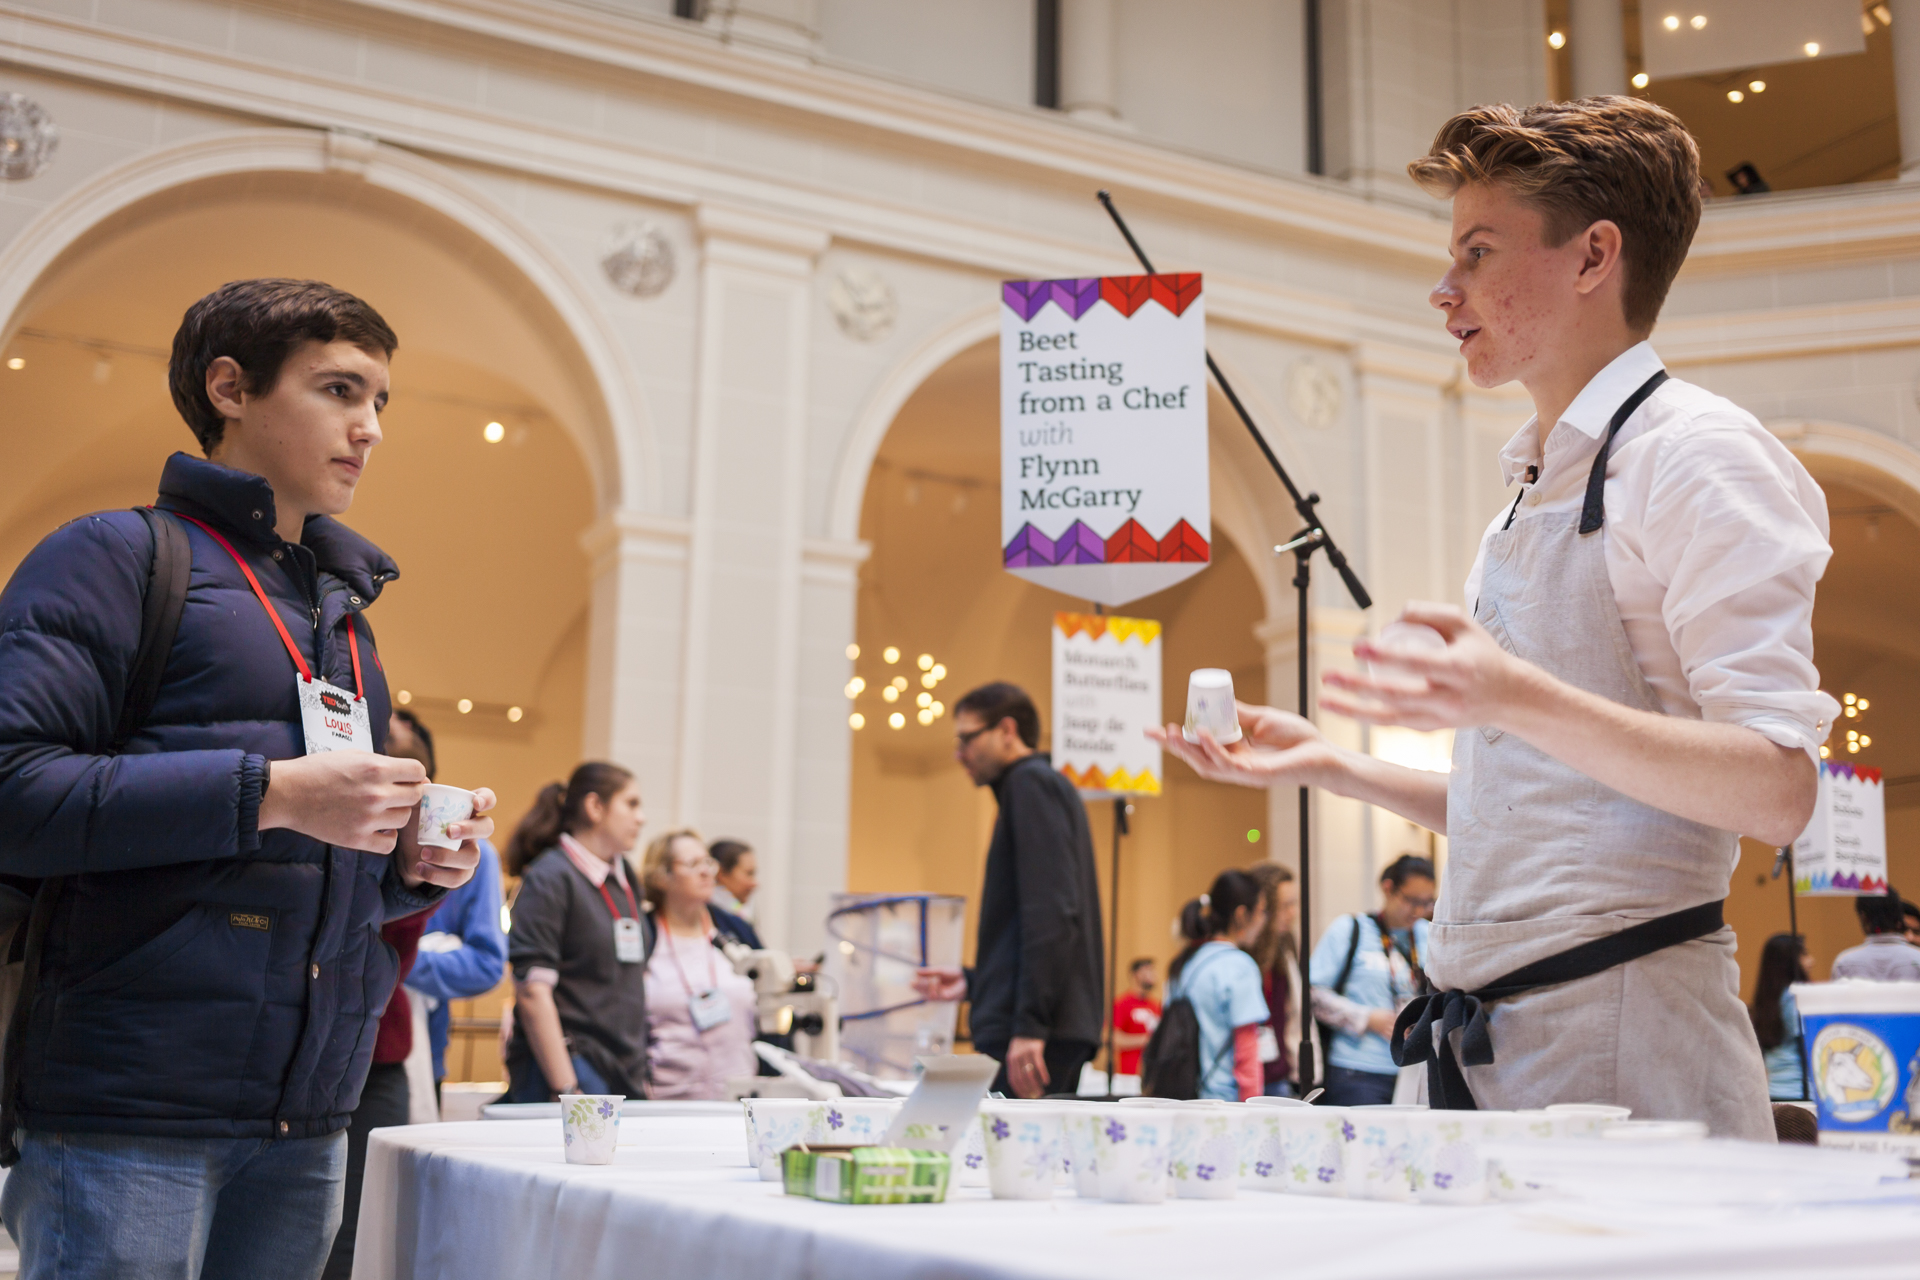 Teenage chef Flynn McGarry talks about his beets, which taste as good as meat. Photo: Dian Lofton/TED